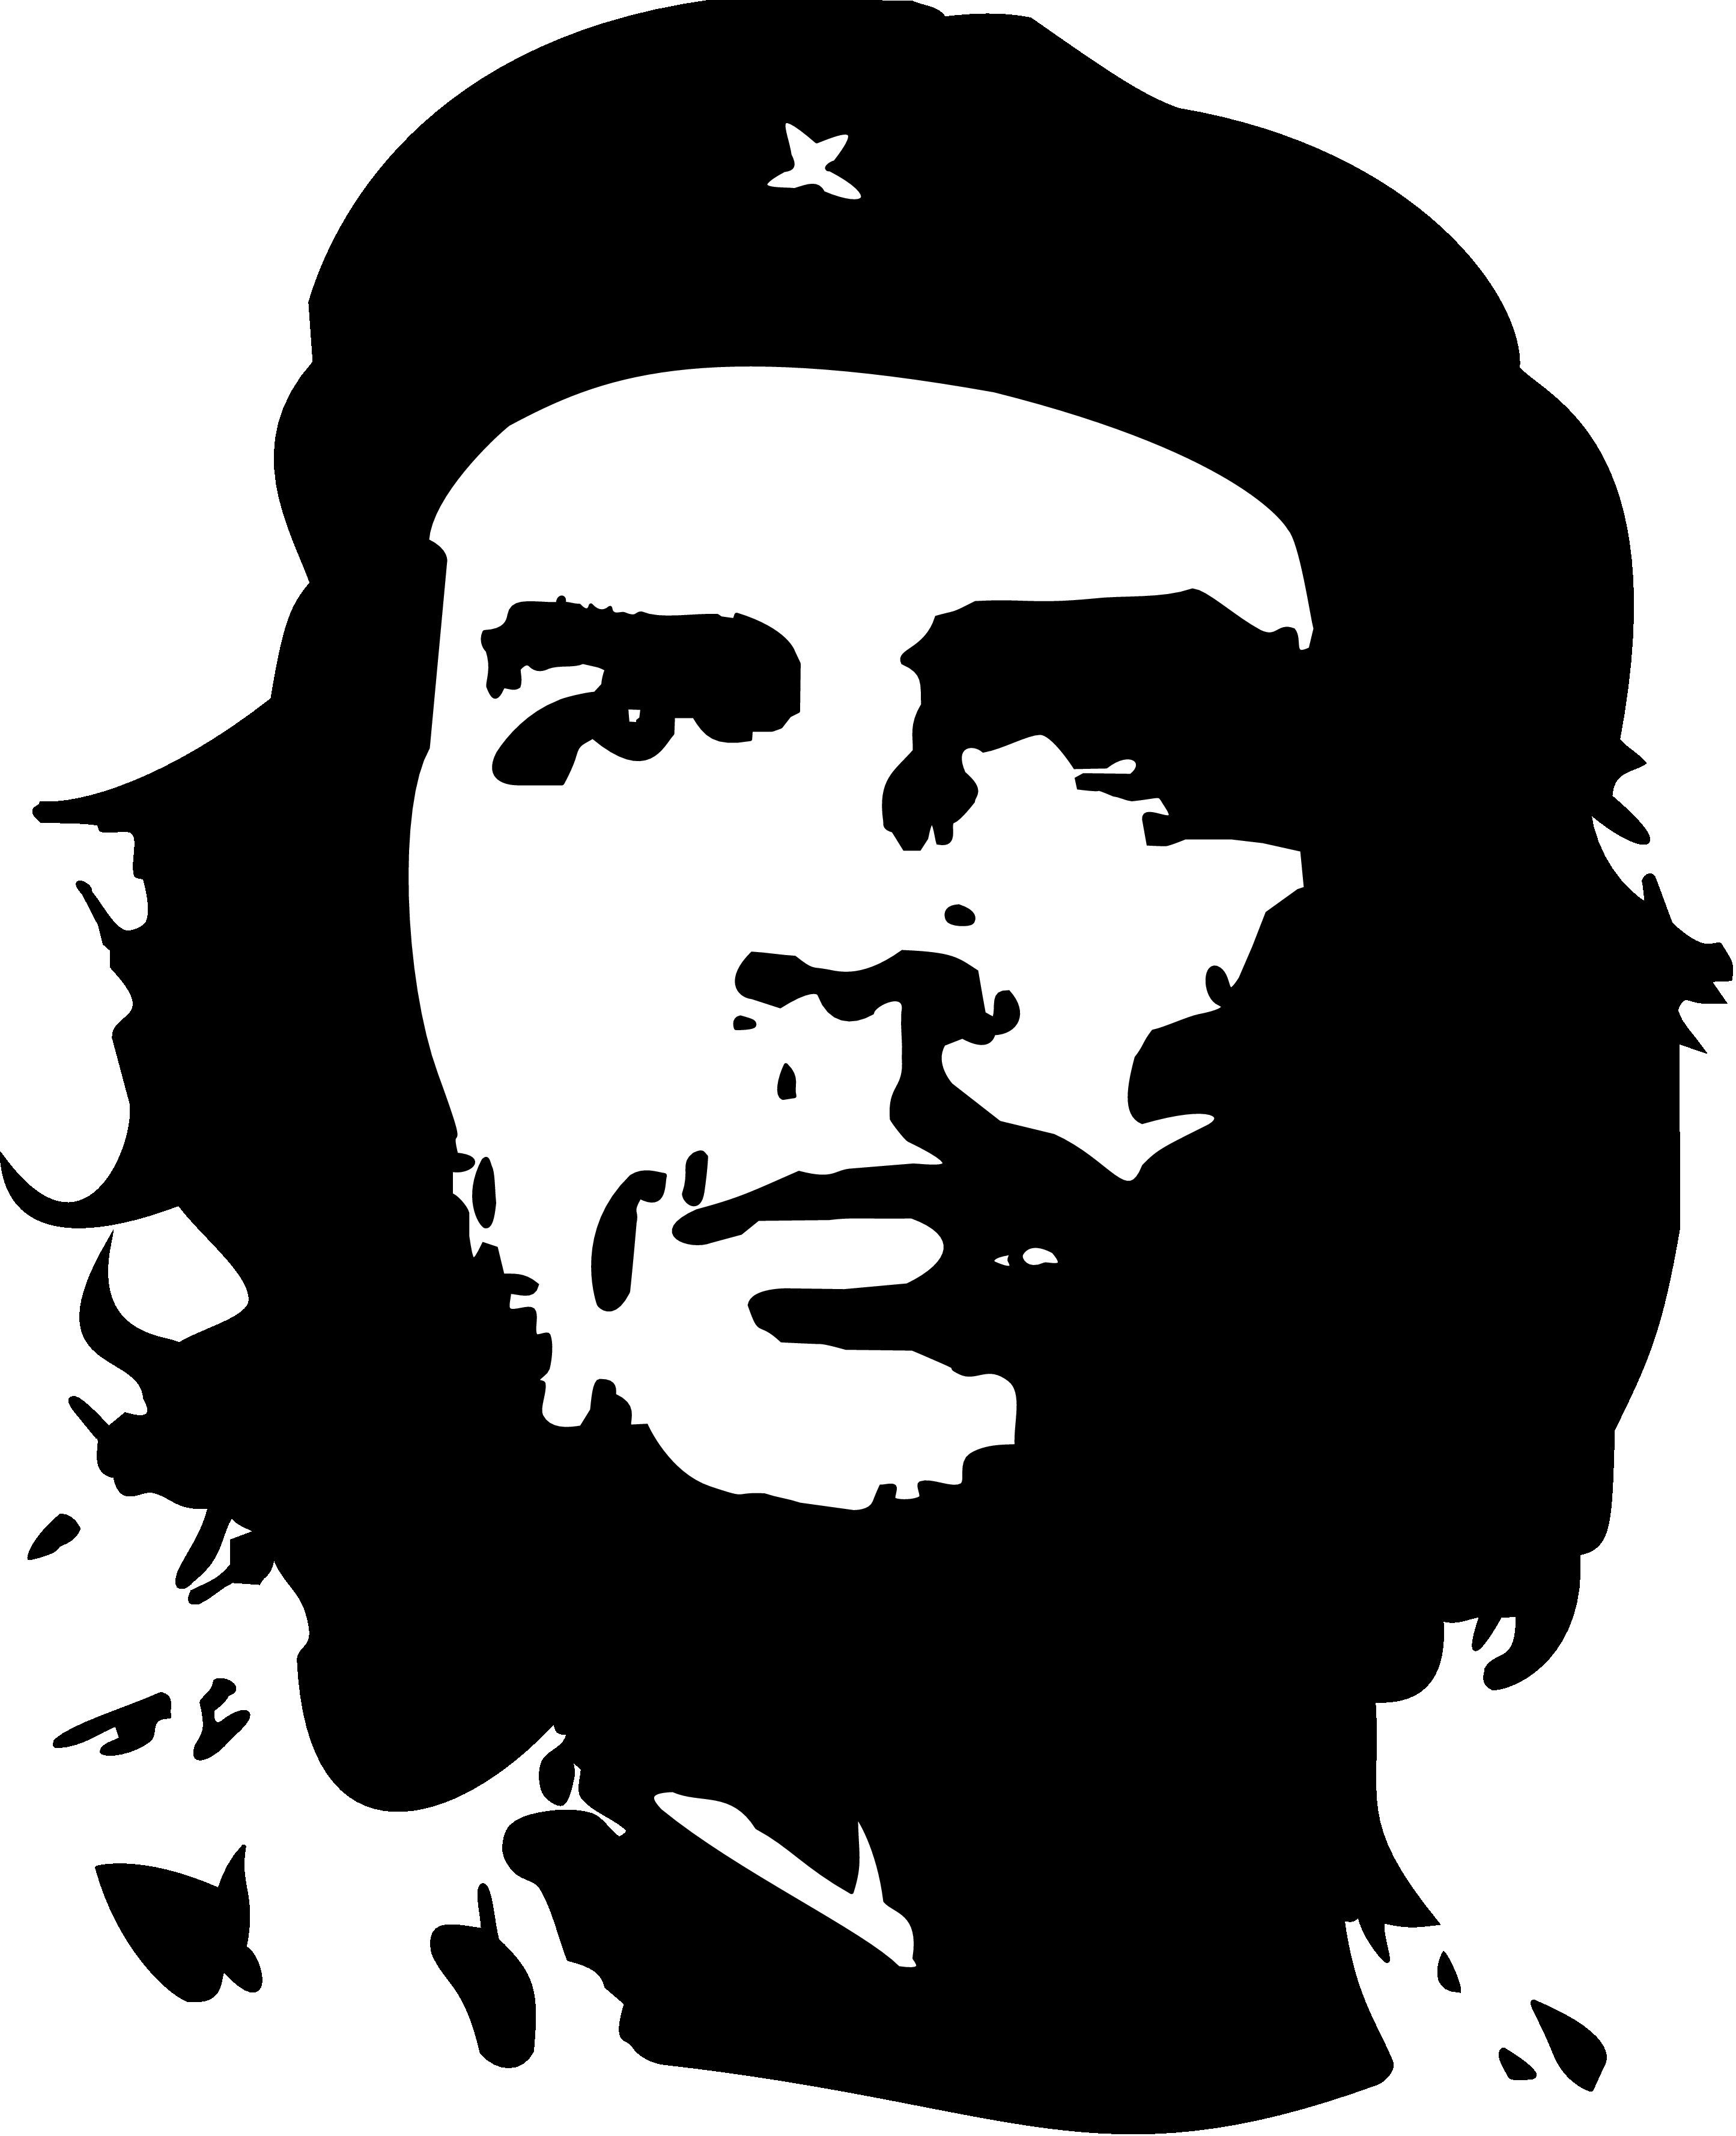 Che guevara revolutionary wallpapers hd desktop and mobile backgrounds - Che guevara hd pics ...